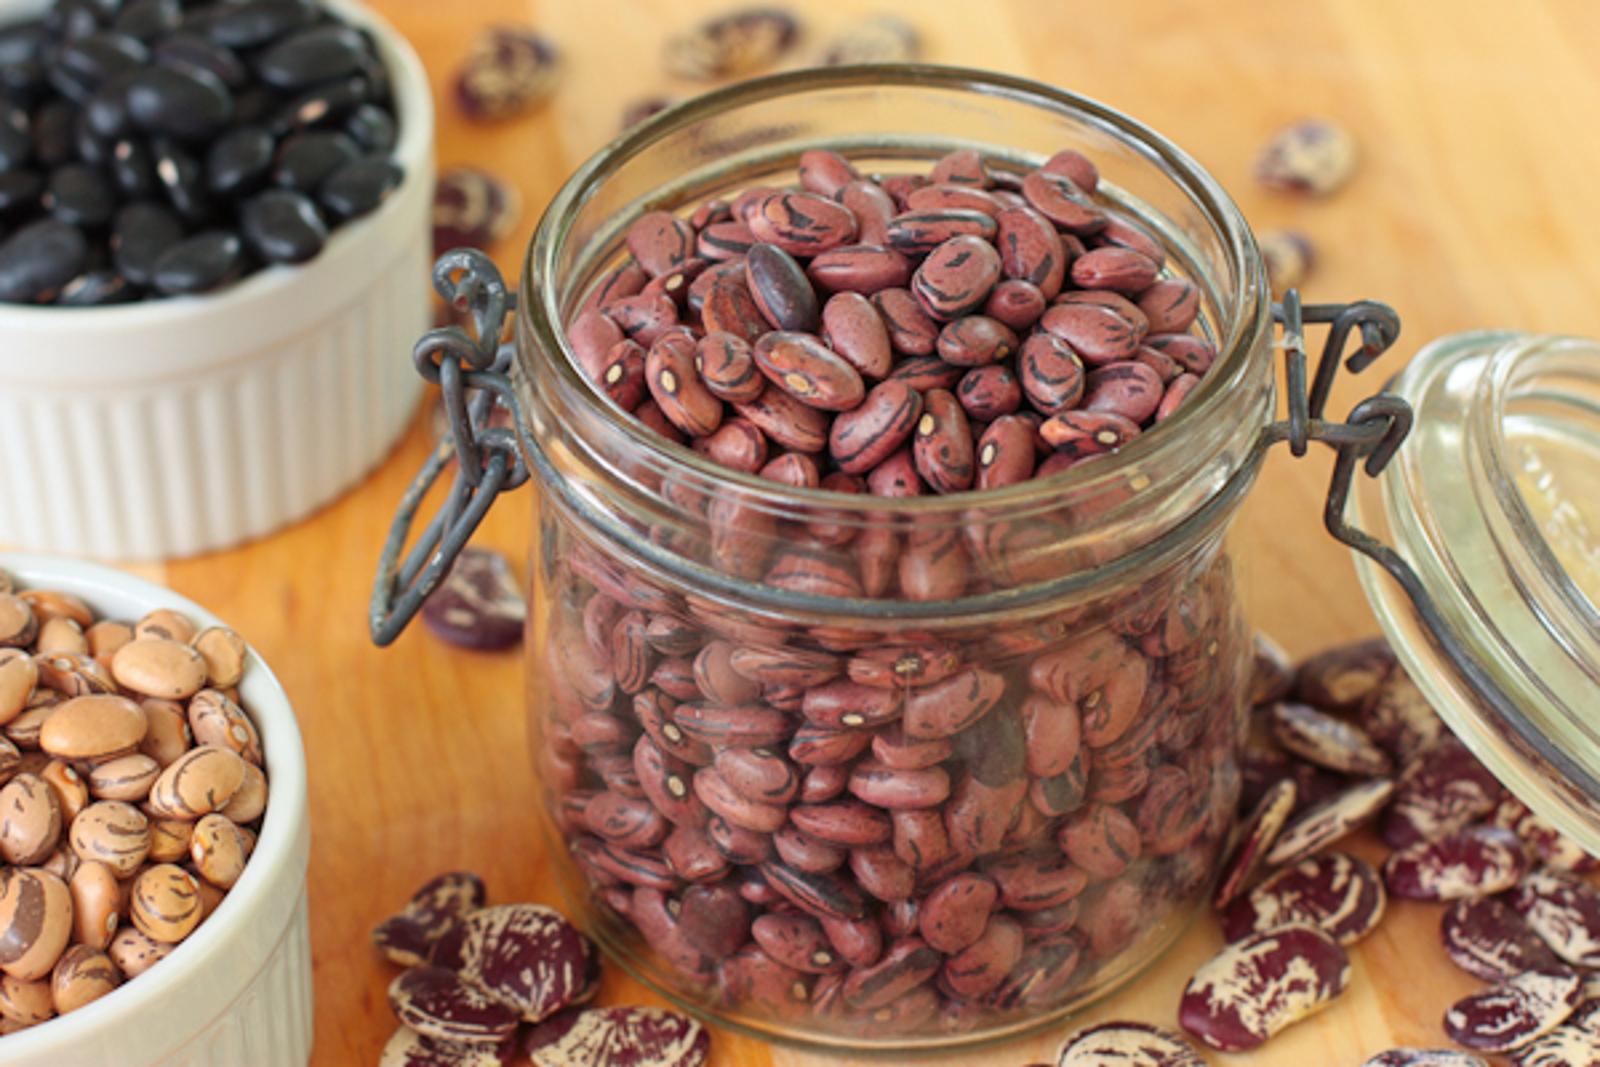 Easy Bean Hacks You Can Use in the Kitchen